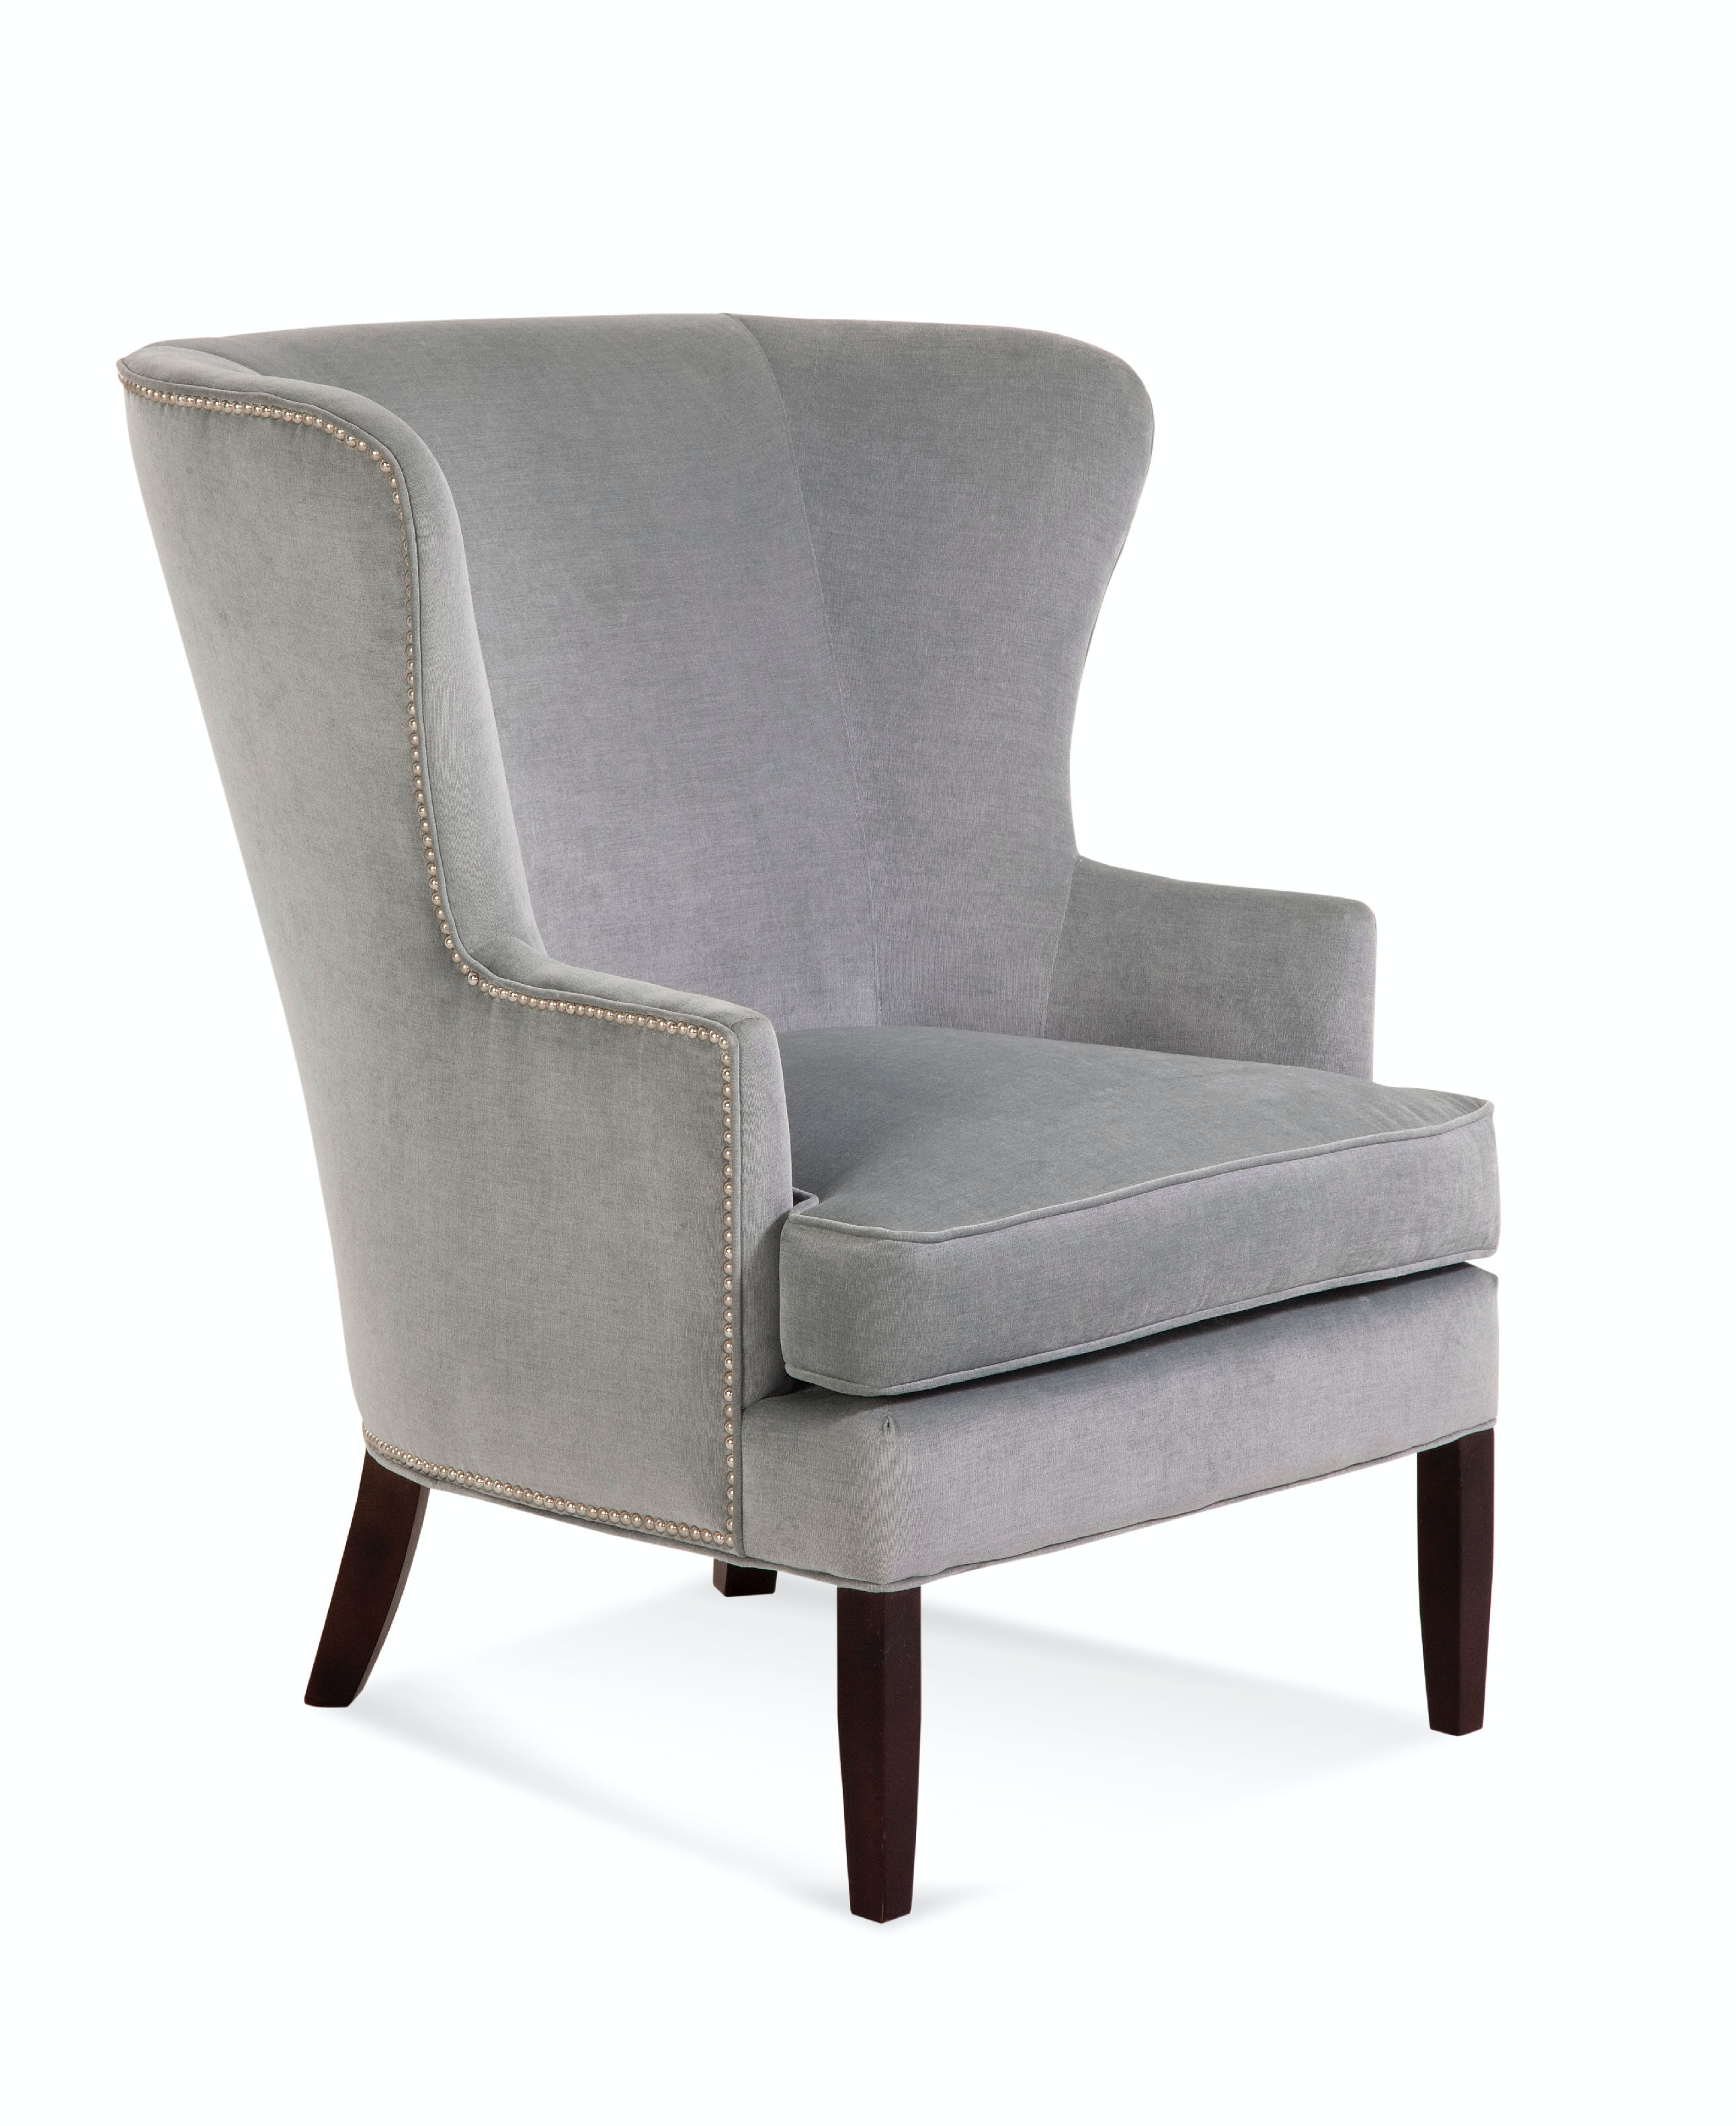 Tredwell Wing Chair with  Nailheads 5732-007SN